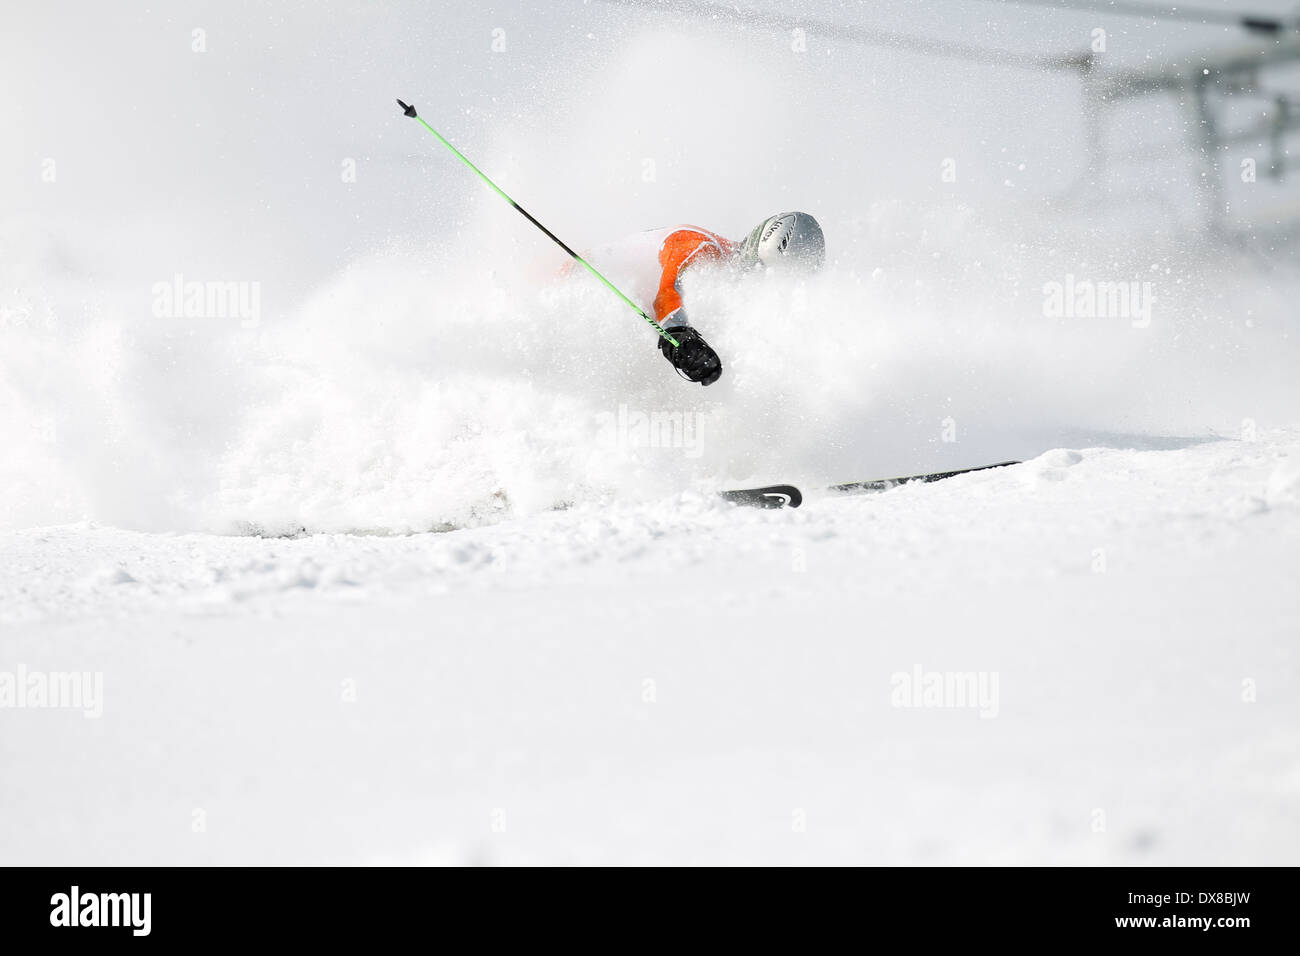 An alpine ski racer out of control on the giant slalom course. - Stock Image